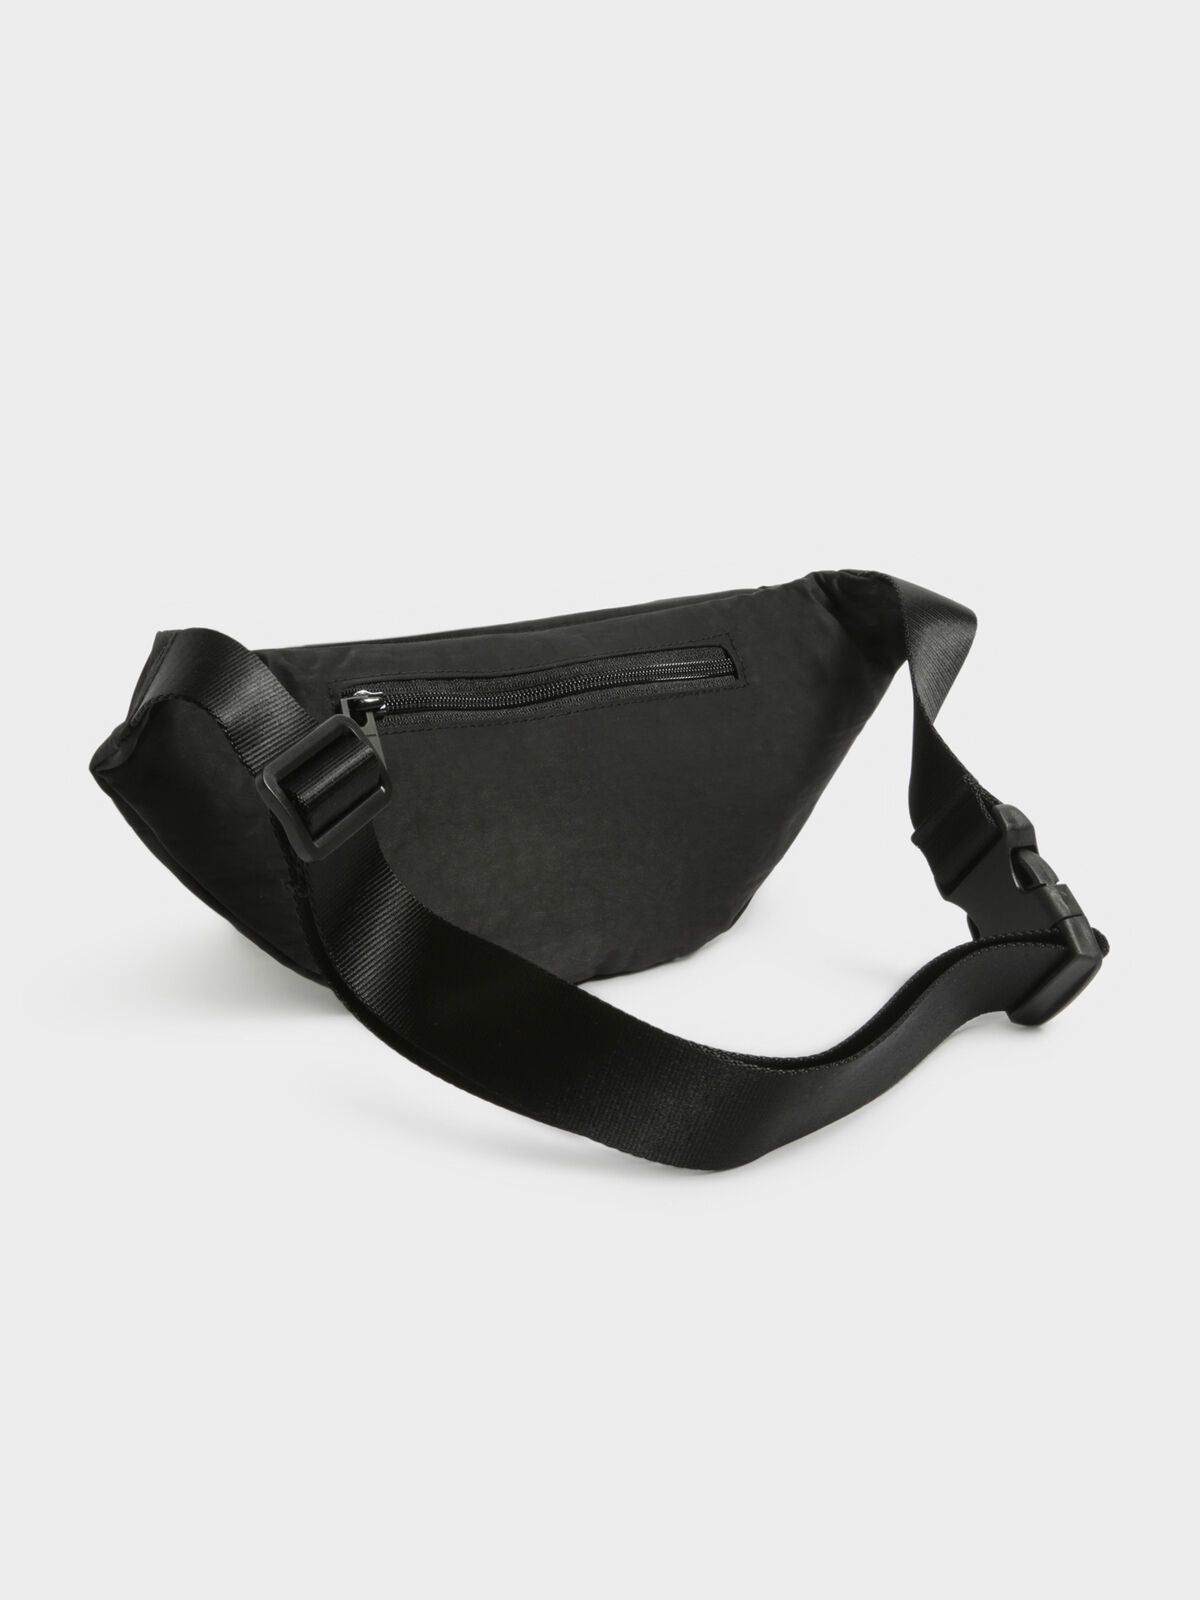 Stock Waist Bag in Black